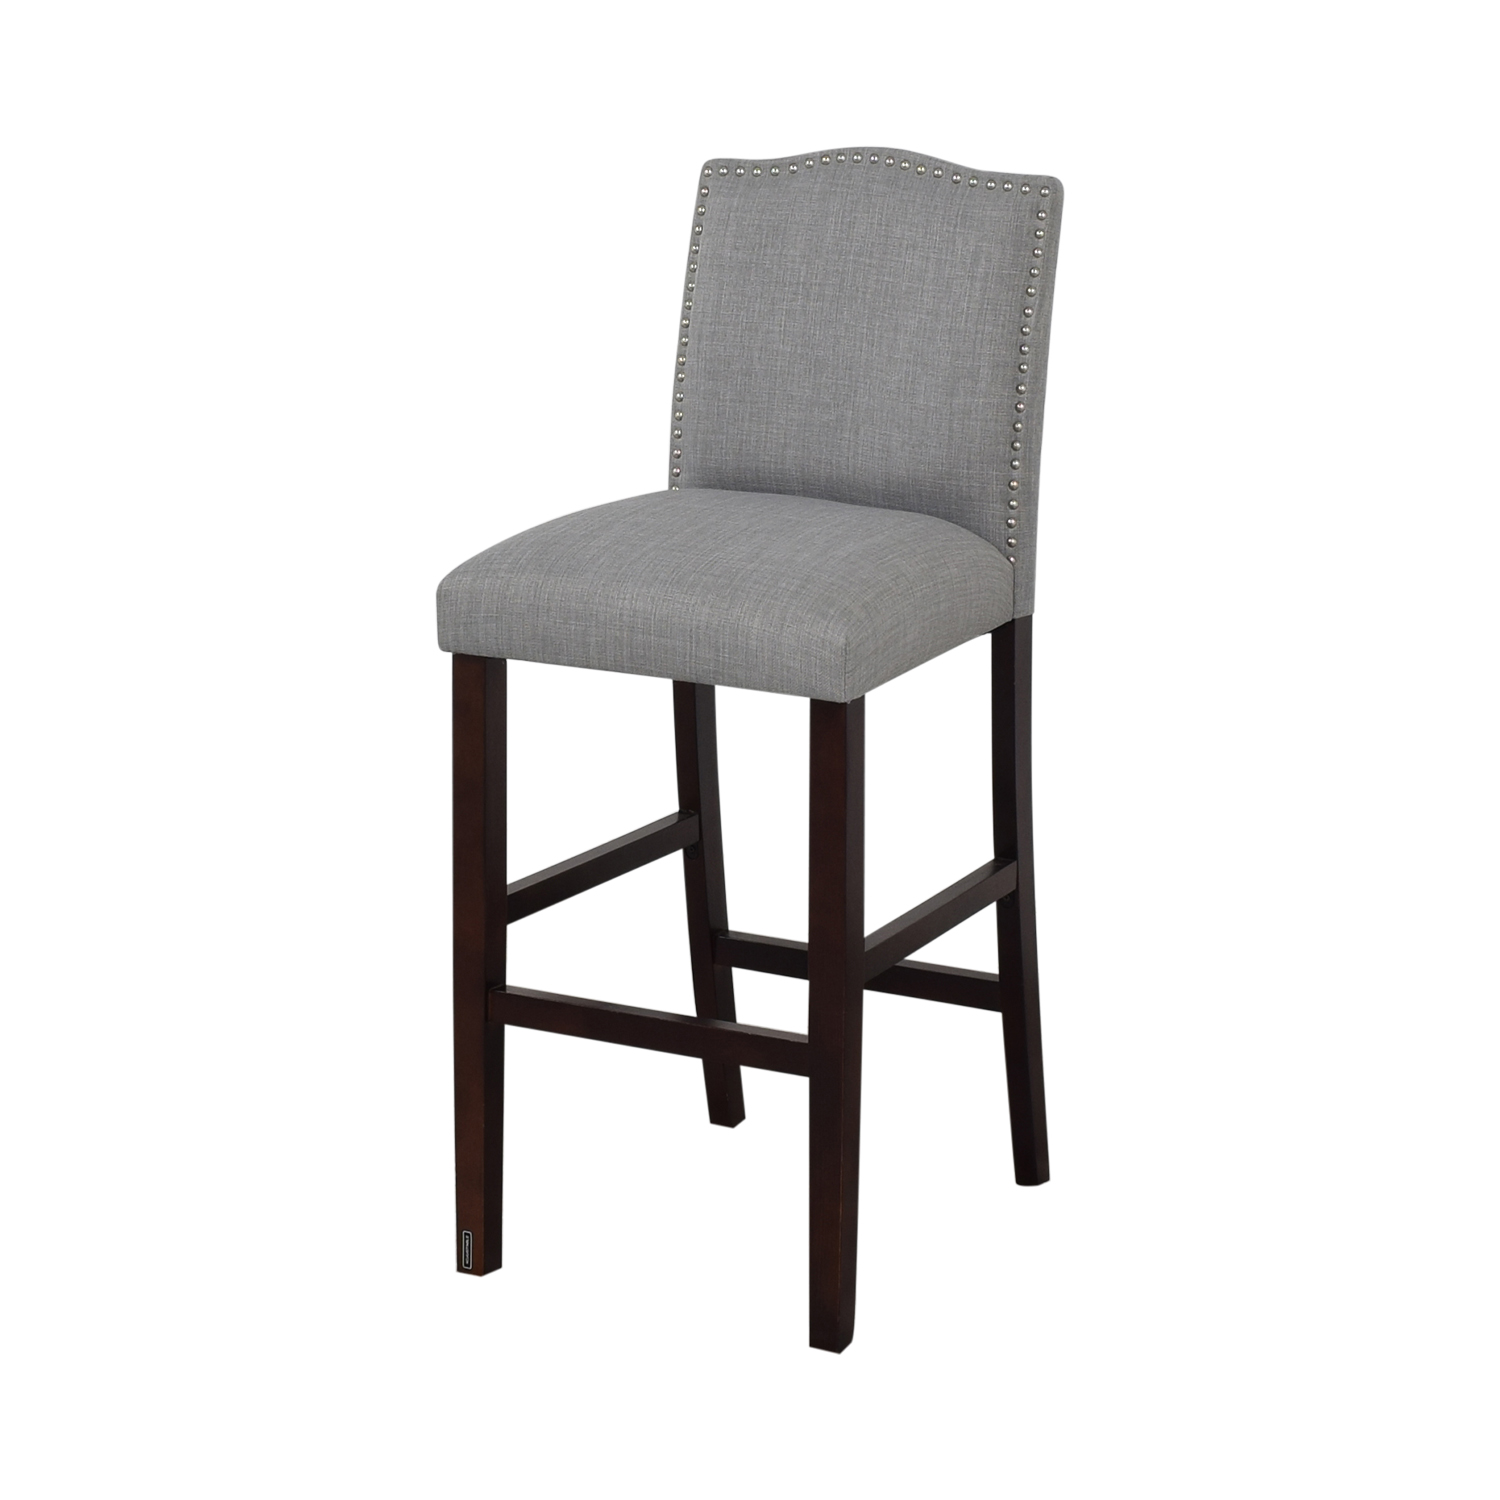 Skyline Furniture Nail Button Camel Back Bar Stools second hand